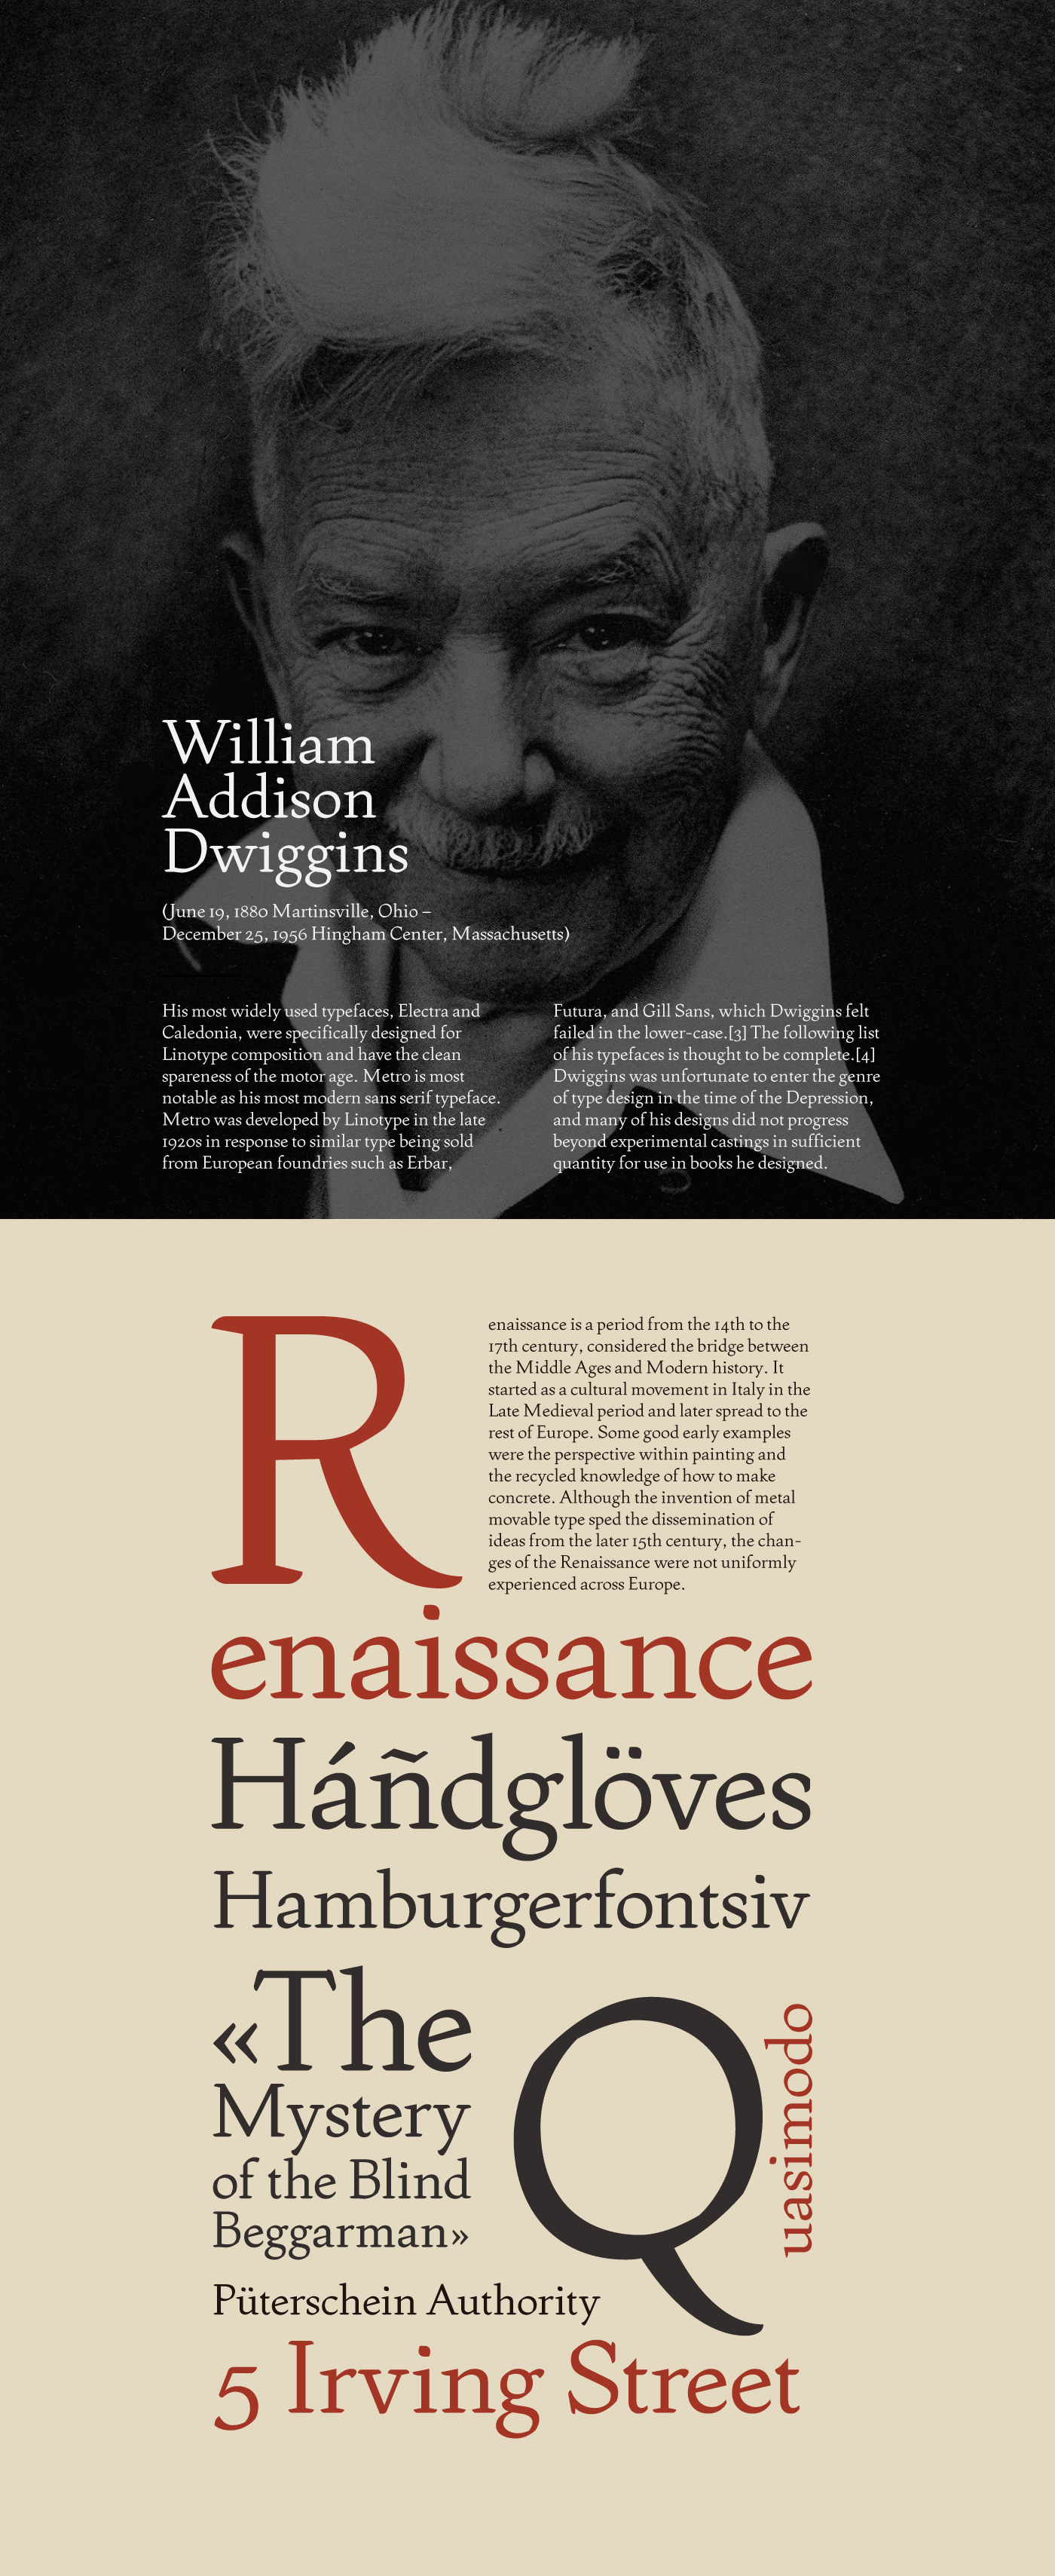 the life and works of william addison dwiggins